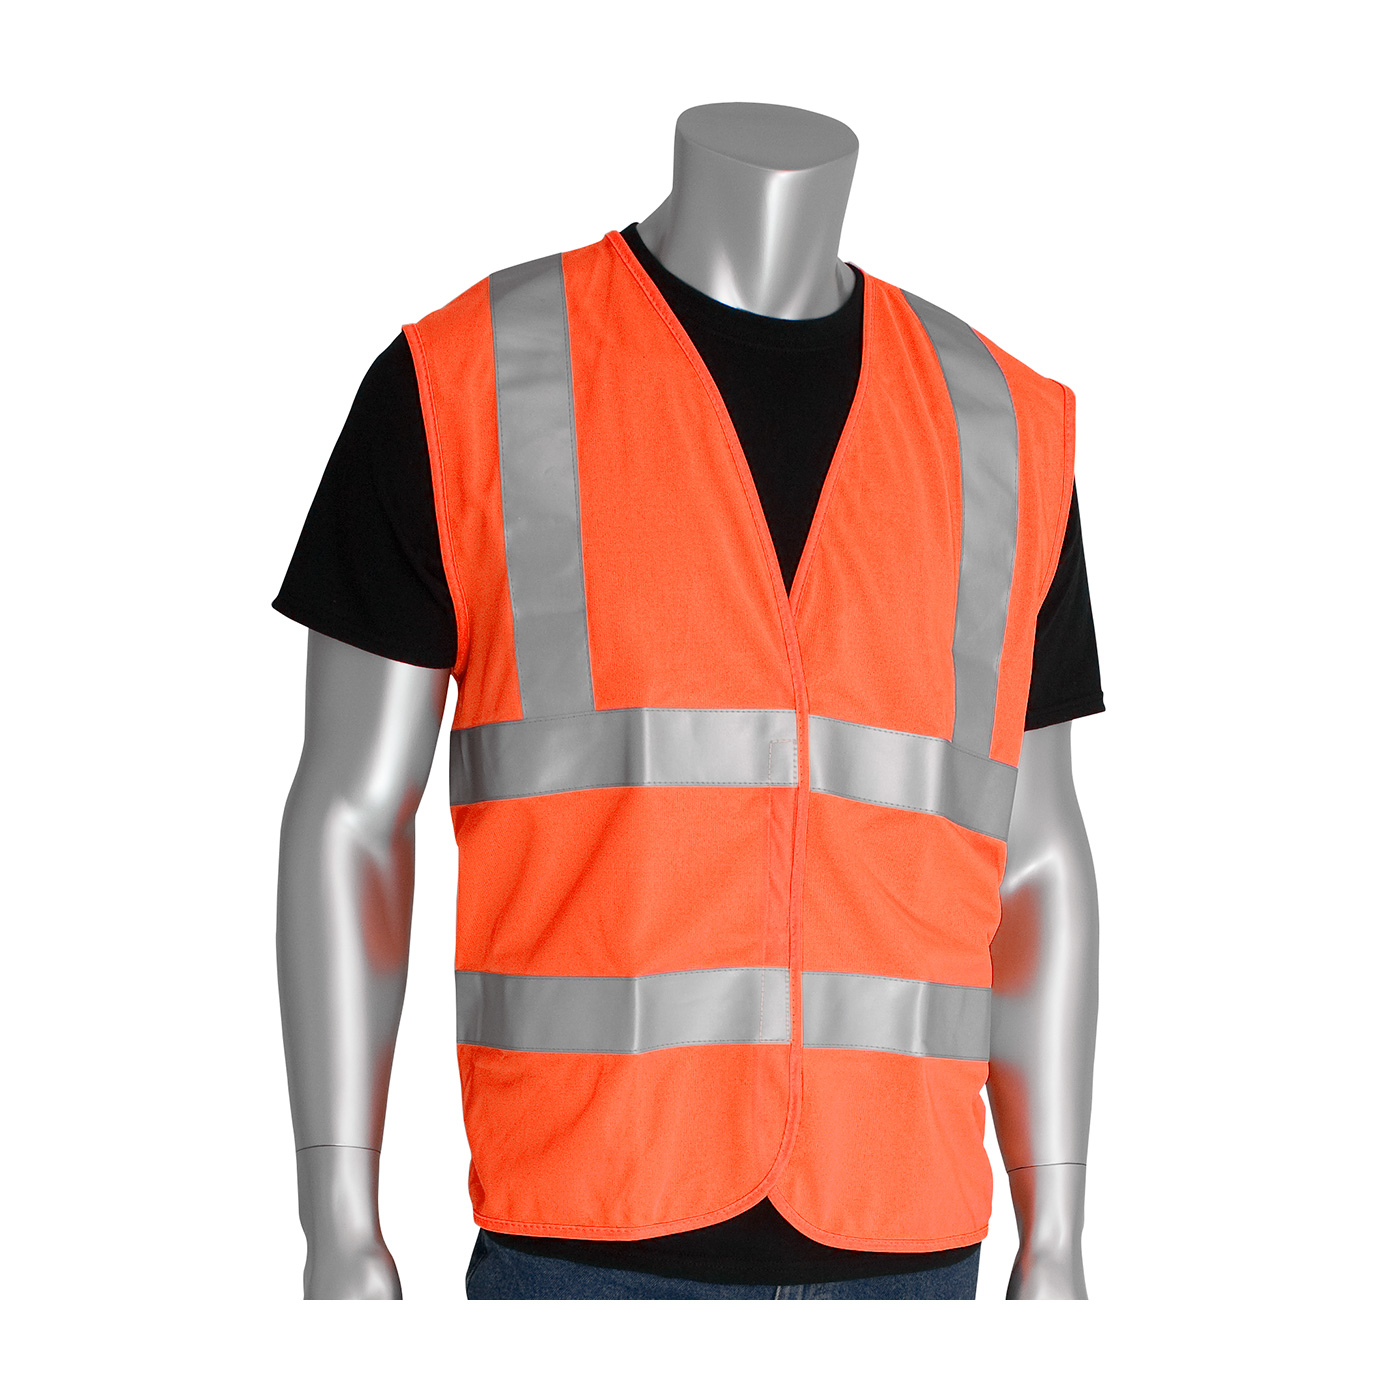 PIP 305-WCENGFROR ANSI Class 2 FR-Treated Solid Fabric Vest, Orange